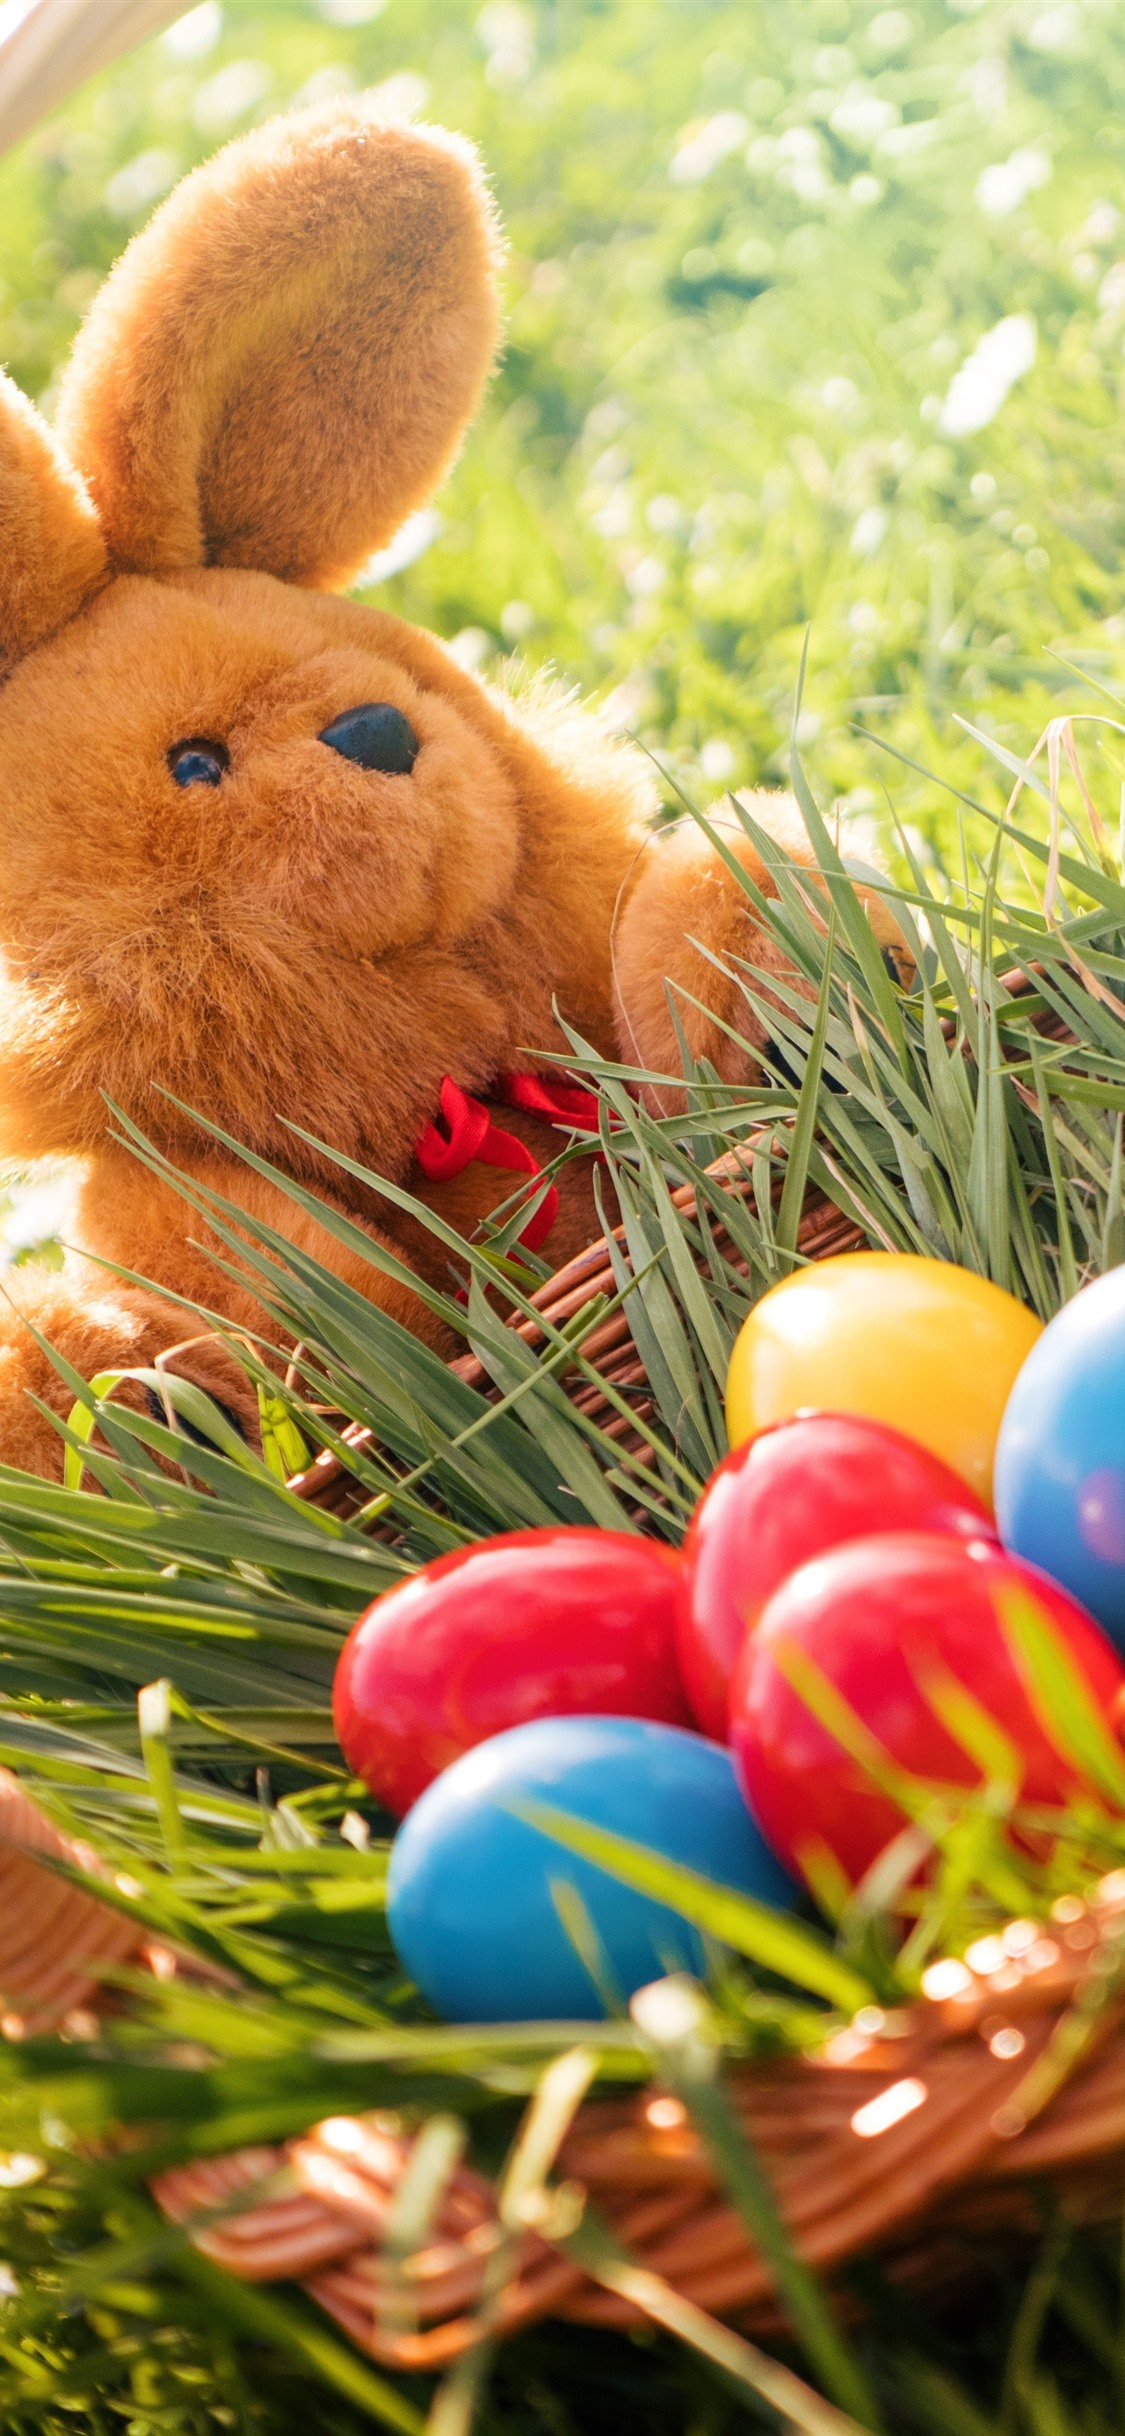 Colorful Eggs Rabbit Toy Grass Basket Easter 1242x2688